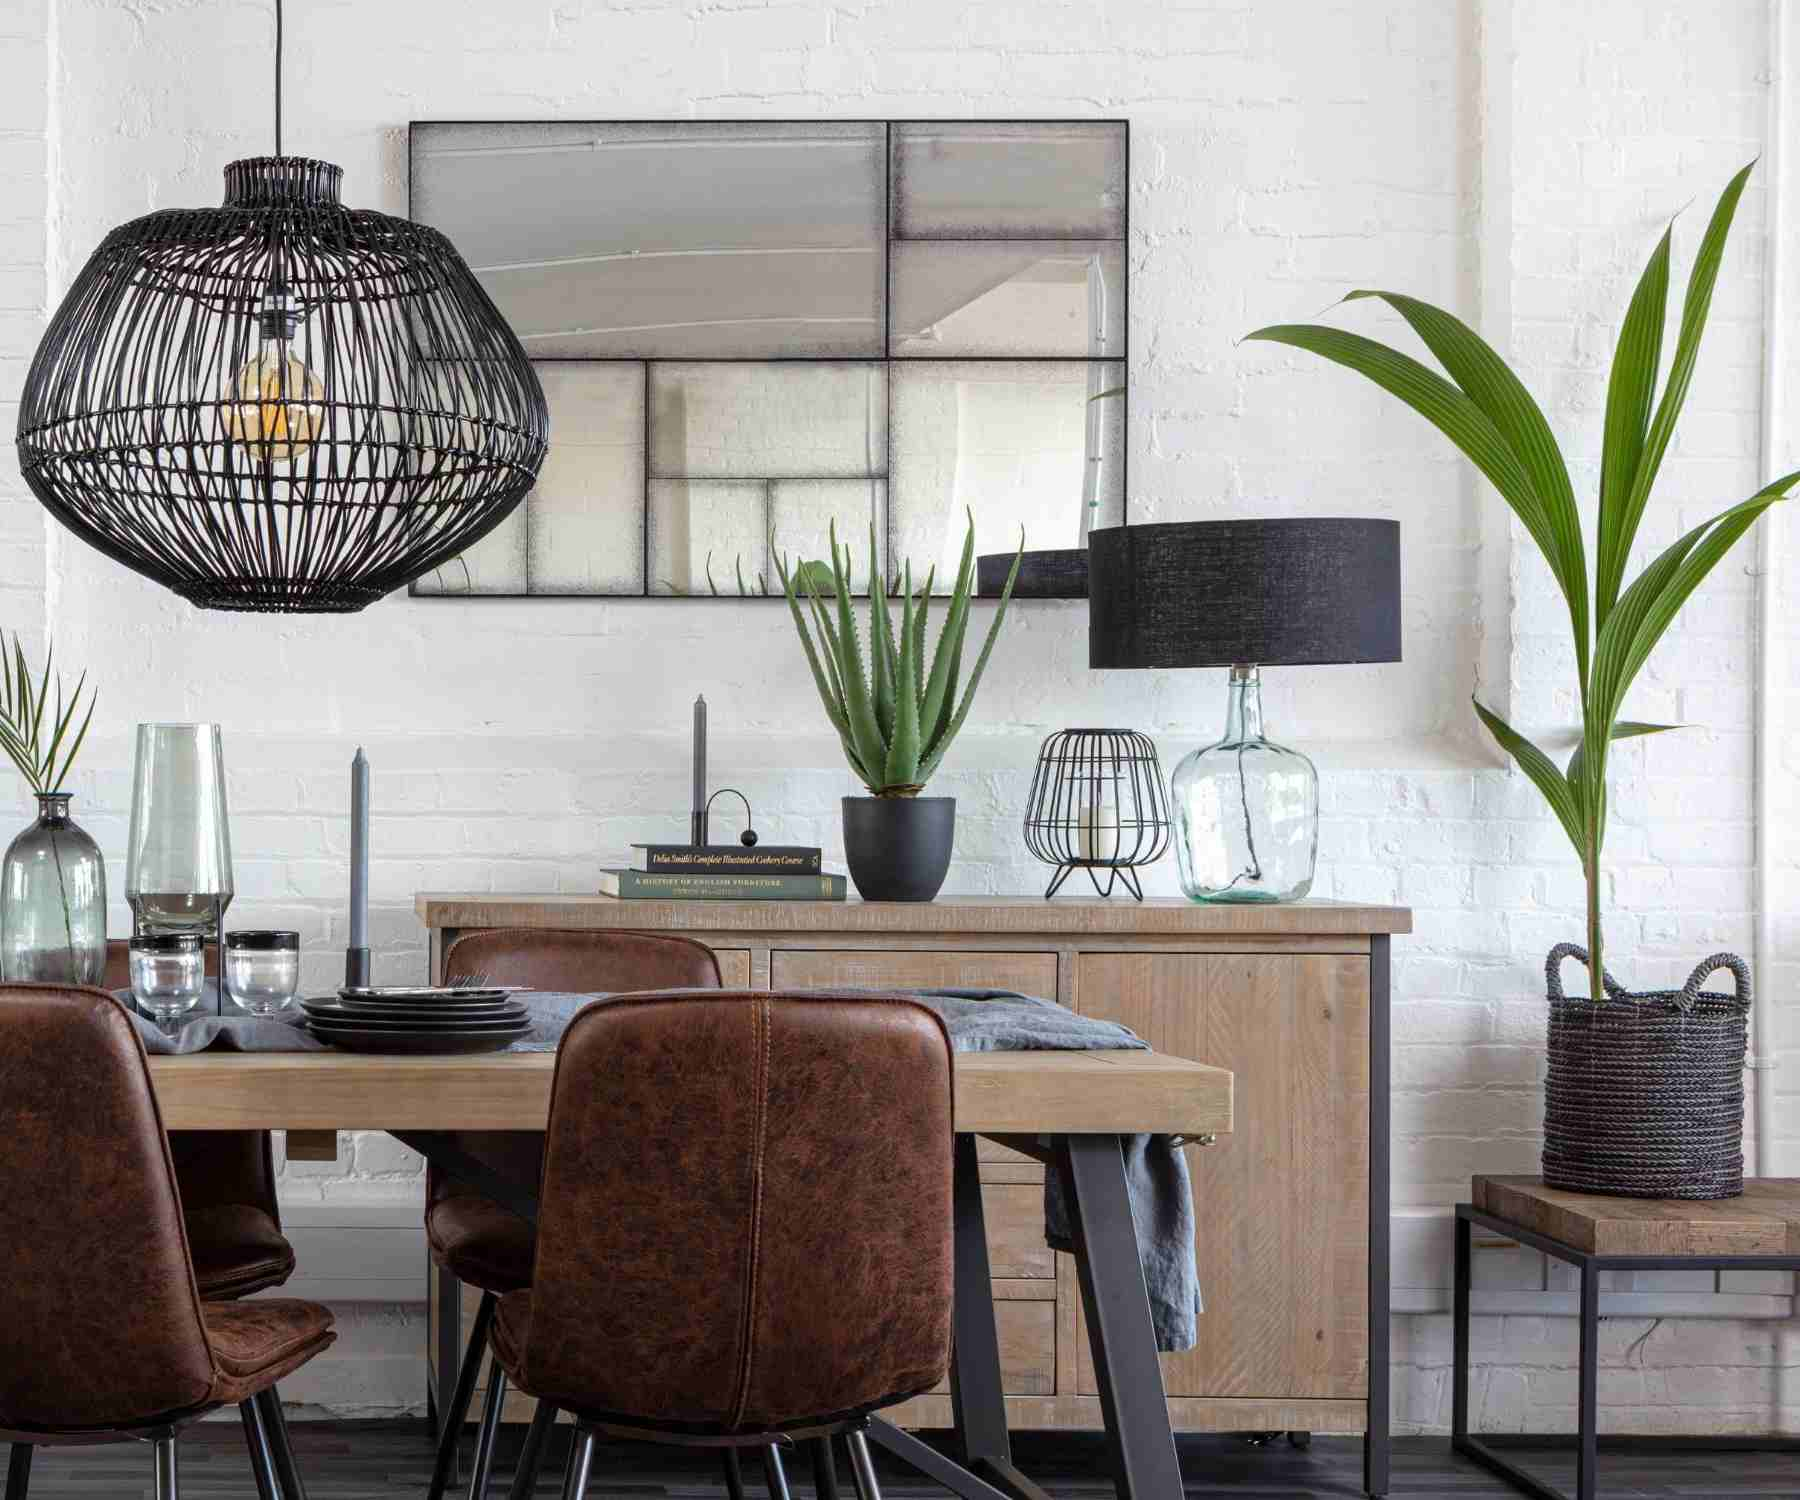 Reclaimed wood dining table with faux leather chairs and black pendant light